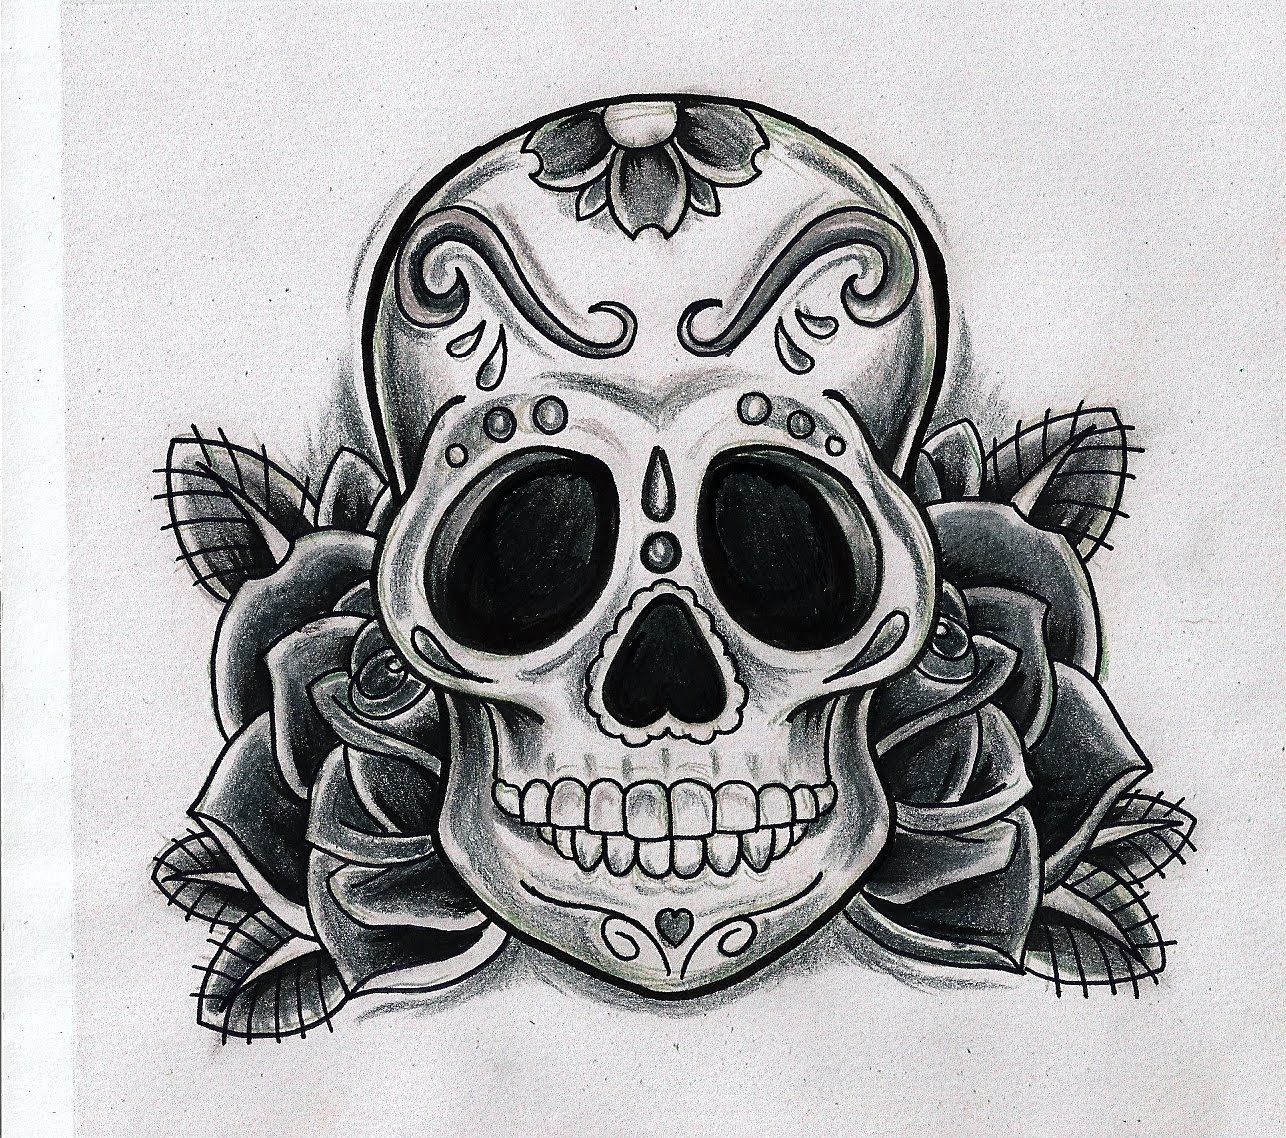 Skull Tattoo Mexican Skull Tattoos Sugar Skull Tattoos Candy Skull Tattoo